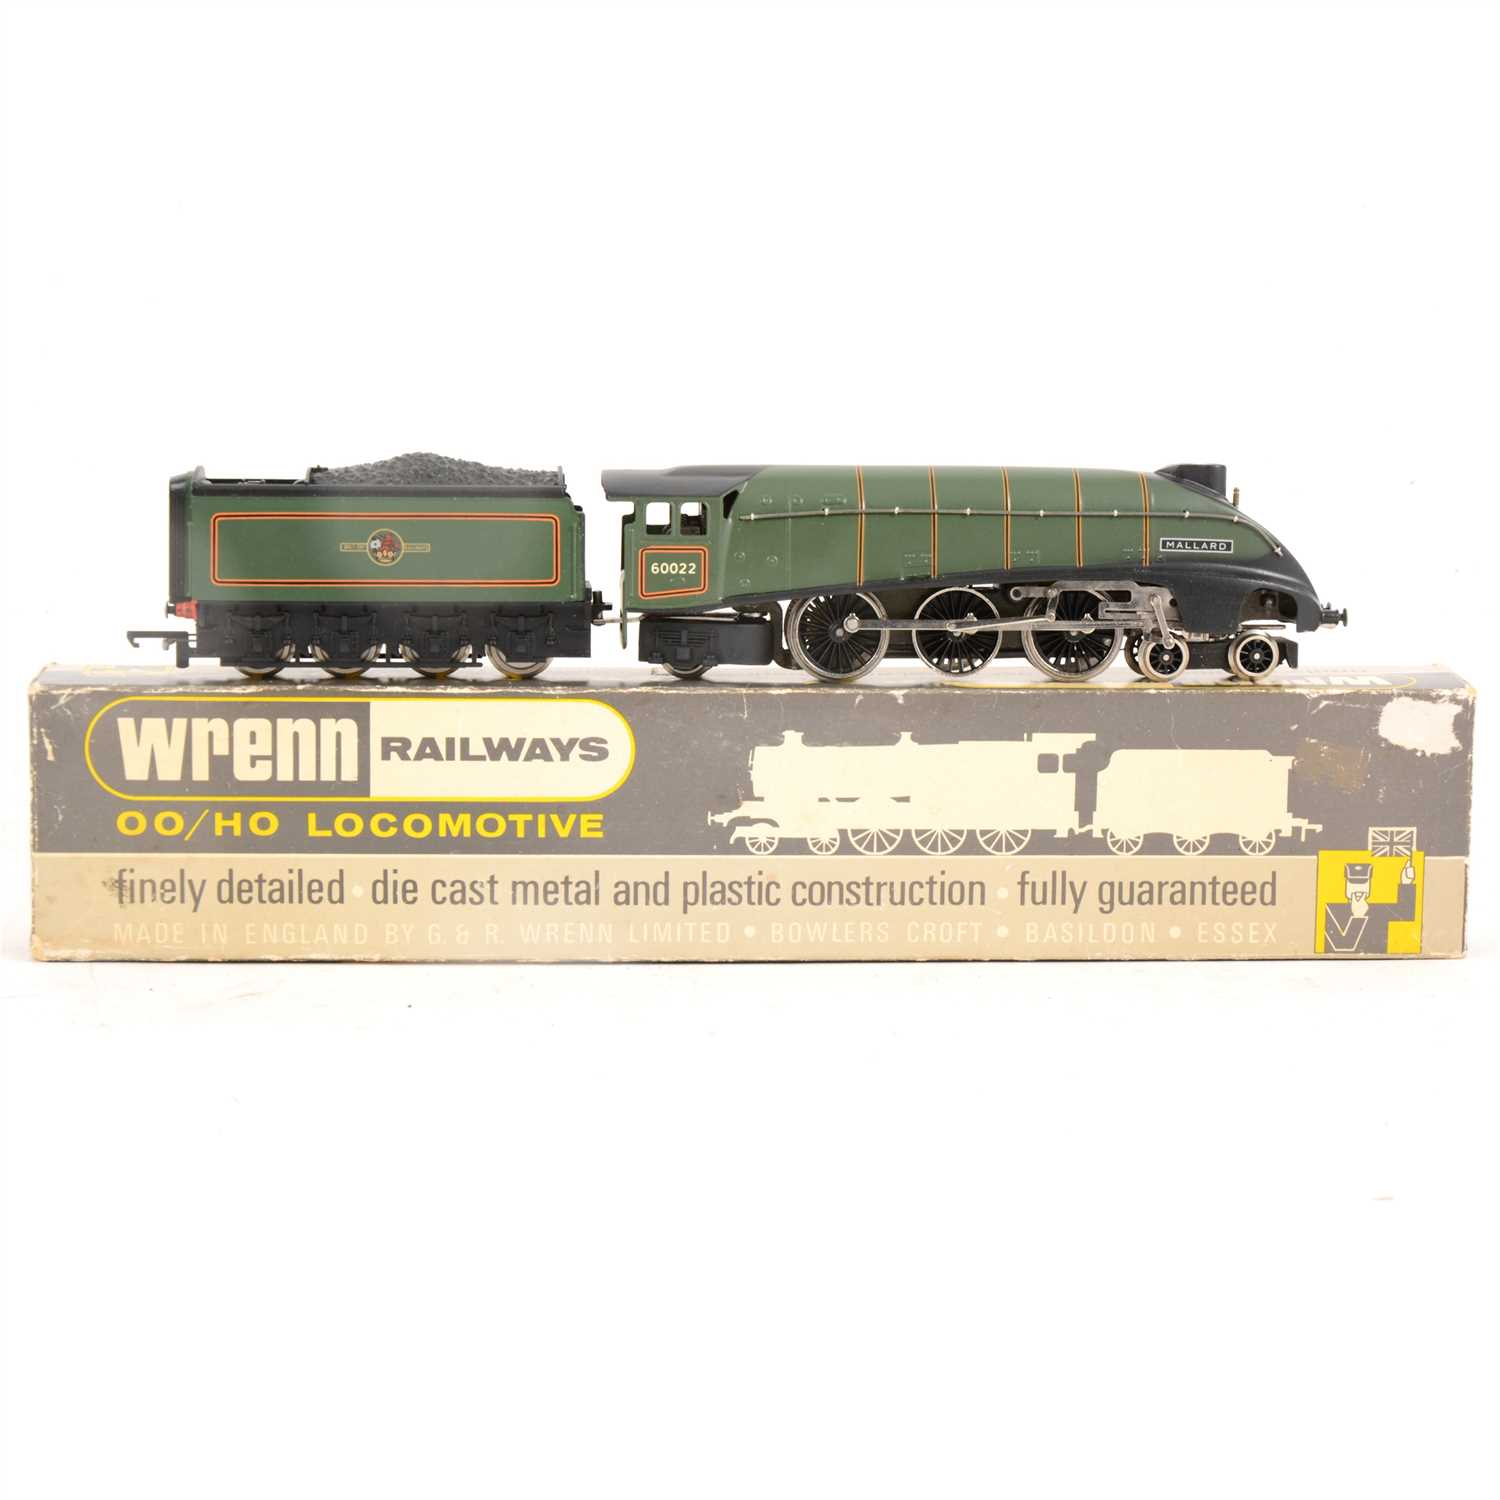 Lot 3-Wrenn Railways OO gauge locomotive; W2211 4-6-2 'Mallard', boxed.